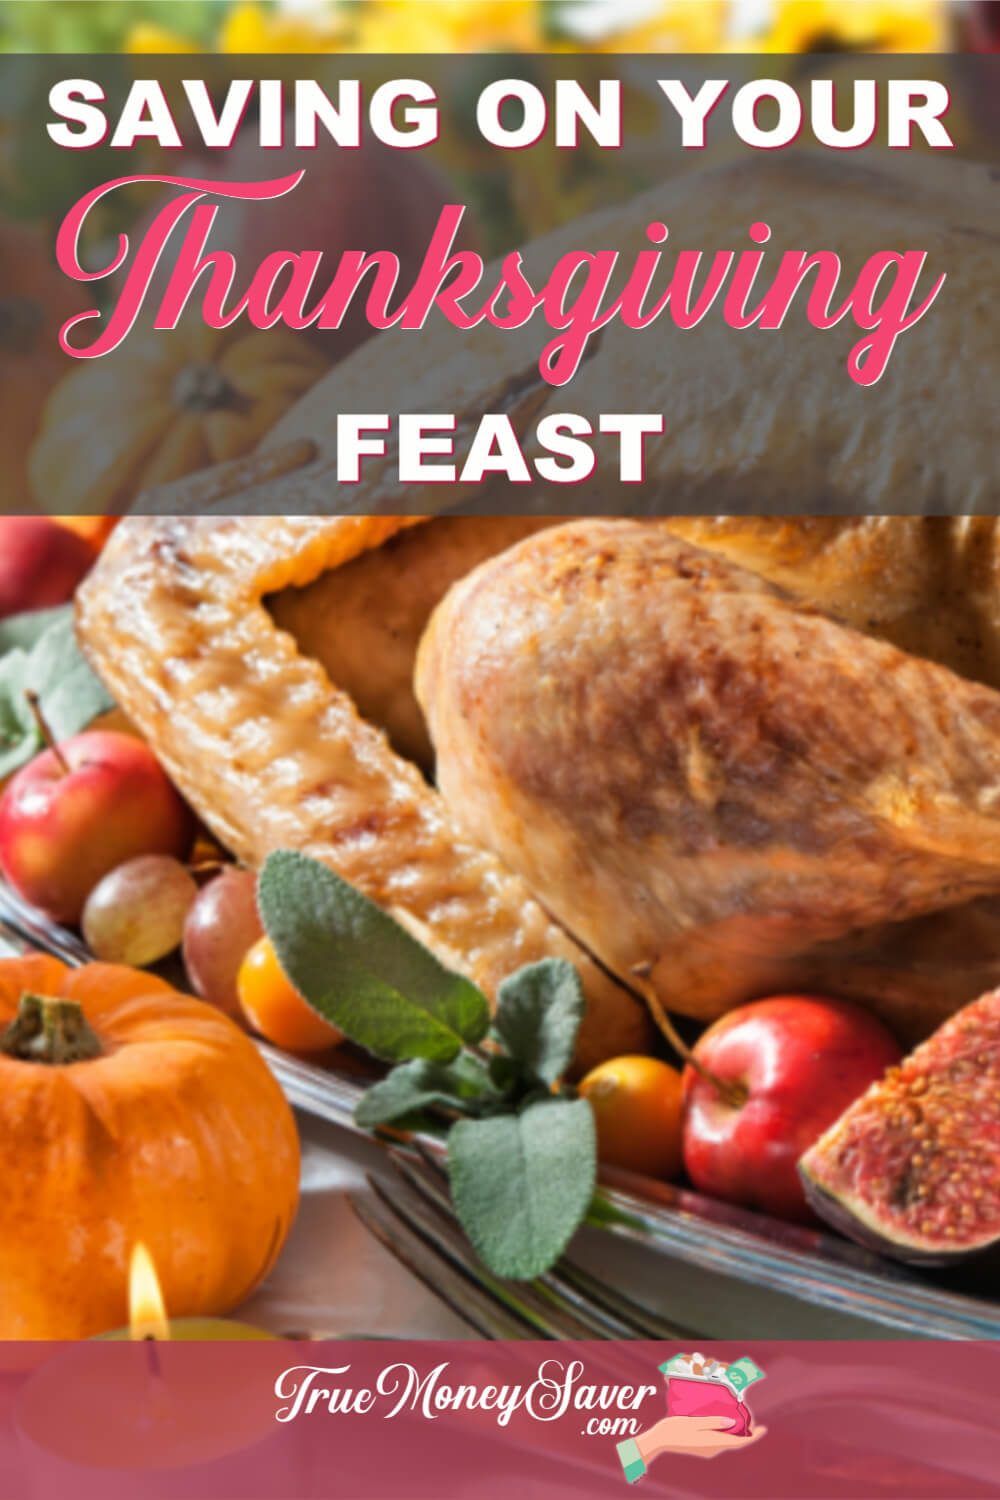 Saving money on your Thanksgiving menu is so important to keep your stress down during the holidays! Plus, use these Thanksgiving dinner hosting ideas to make wise dish choices to help save your sanity too! With these tips to having a Thanksgiving dinner on a budget, your dinner will be a hit! 